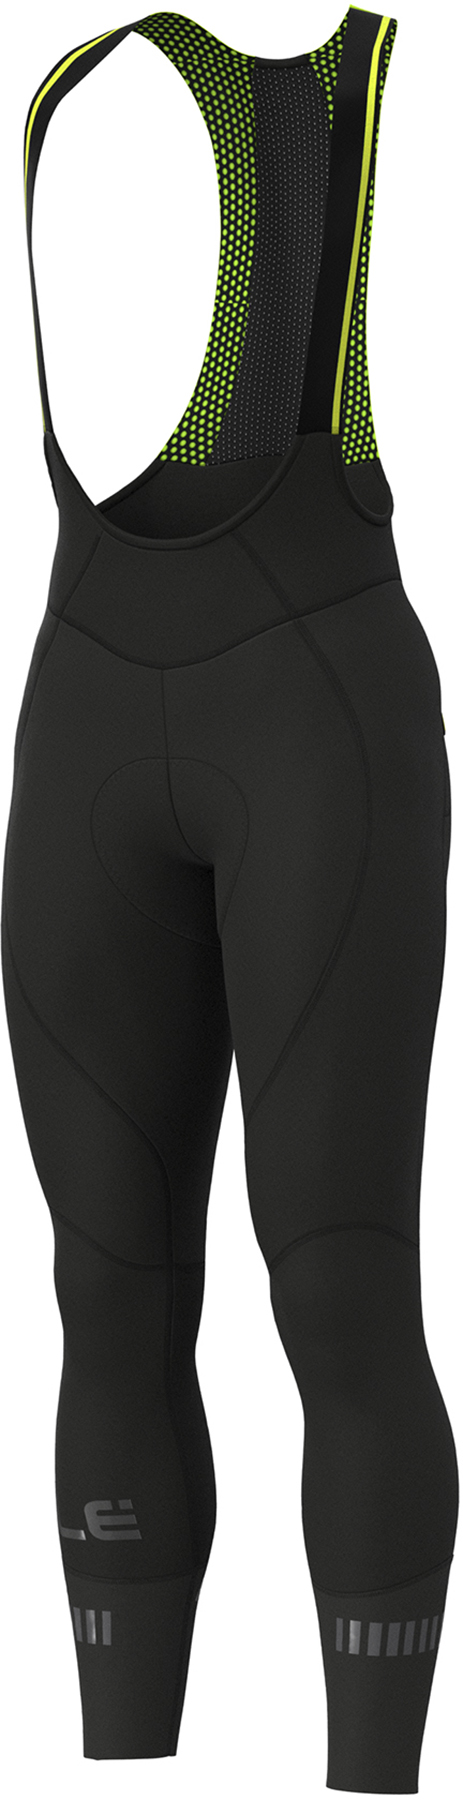 Alé Nordik Thermowind Dwr Bibtights | Trousers